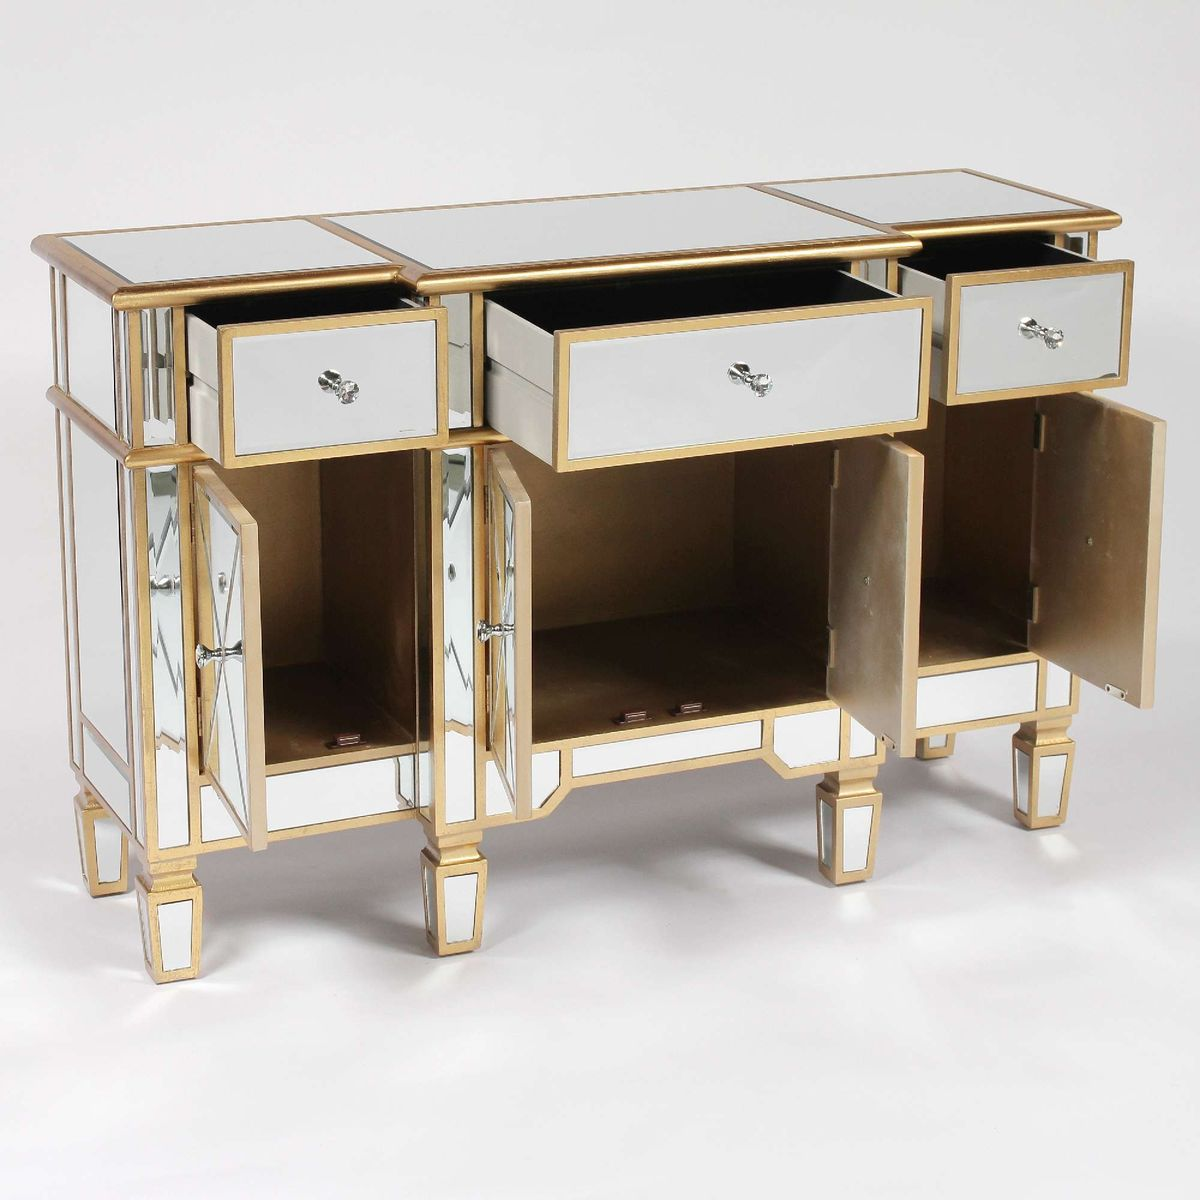 Antique Mirrored Gold Side Cabinet - product images  of